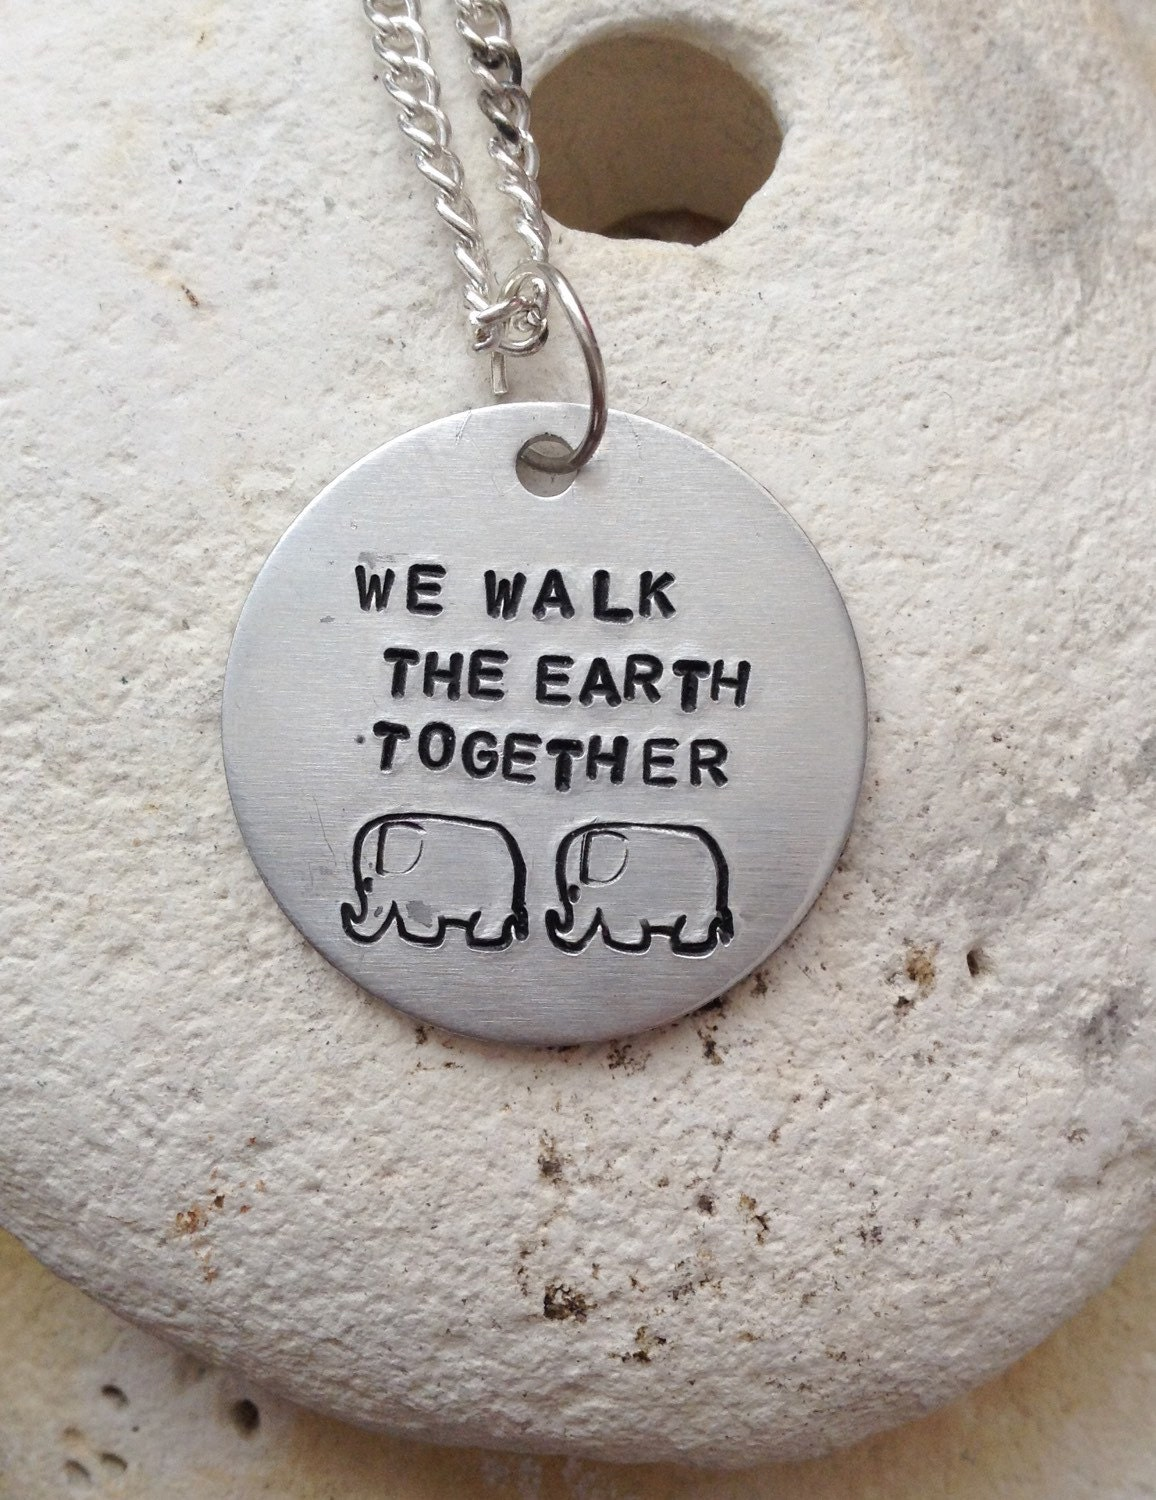 We walk the earth together elephant necklace - love jewellery - valentines gift - handstamped 25mm  pendant on 18